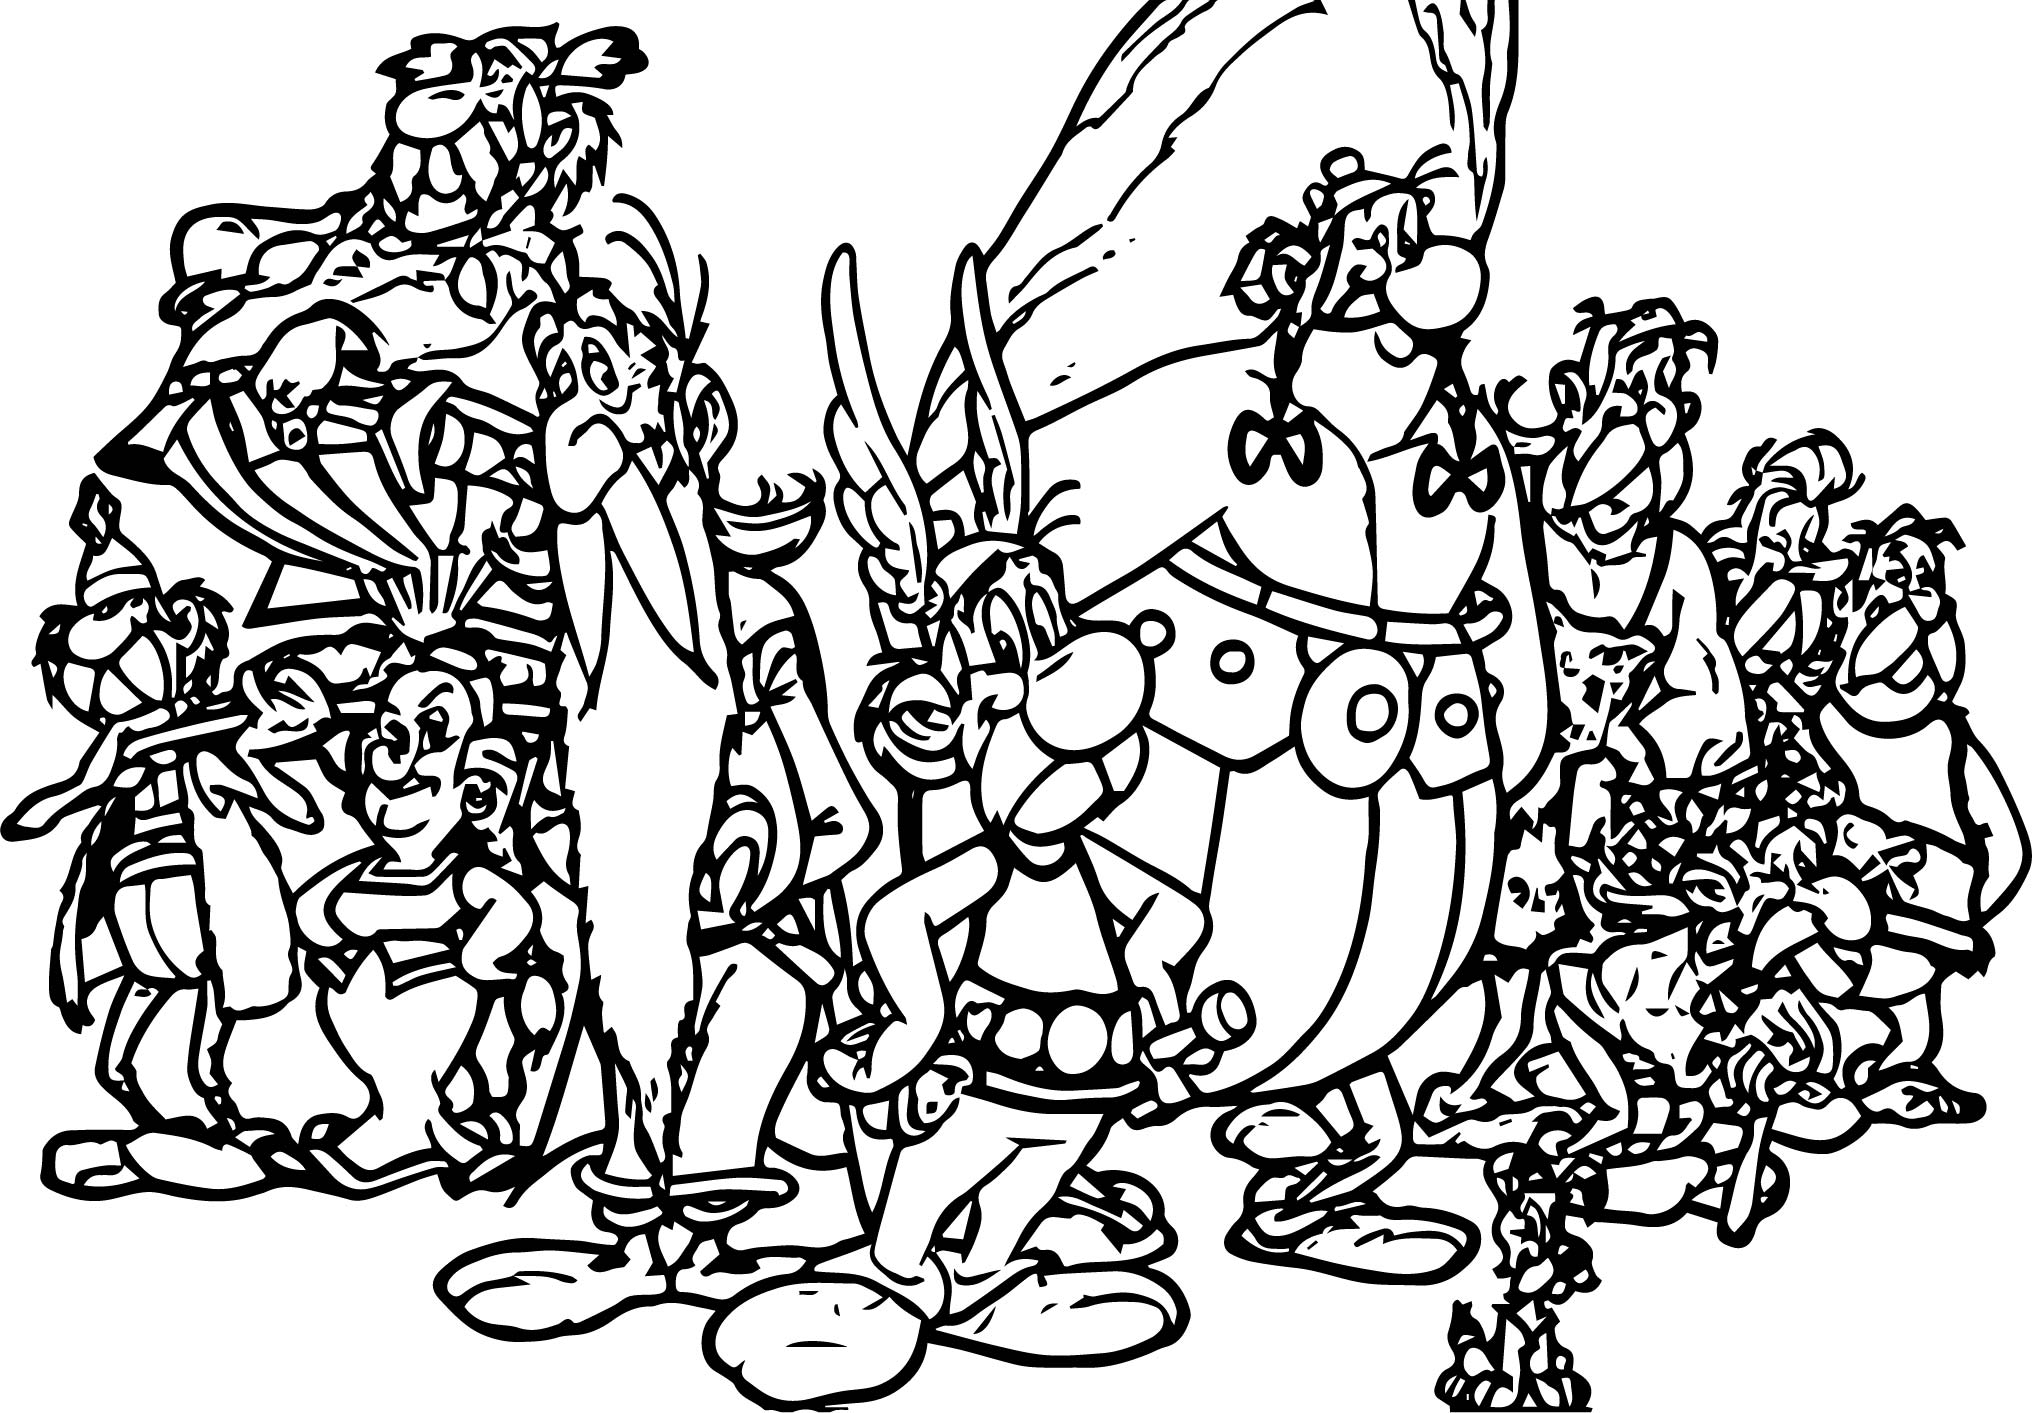 Asterix Team Coloring Page